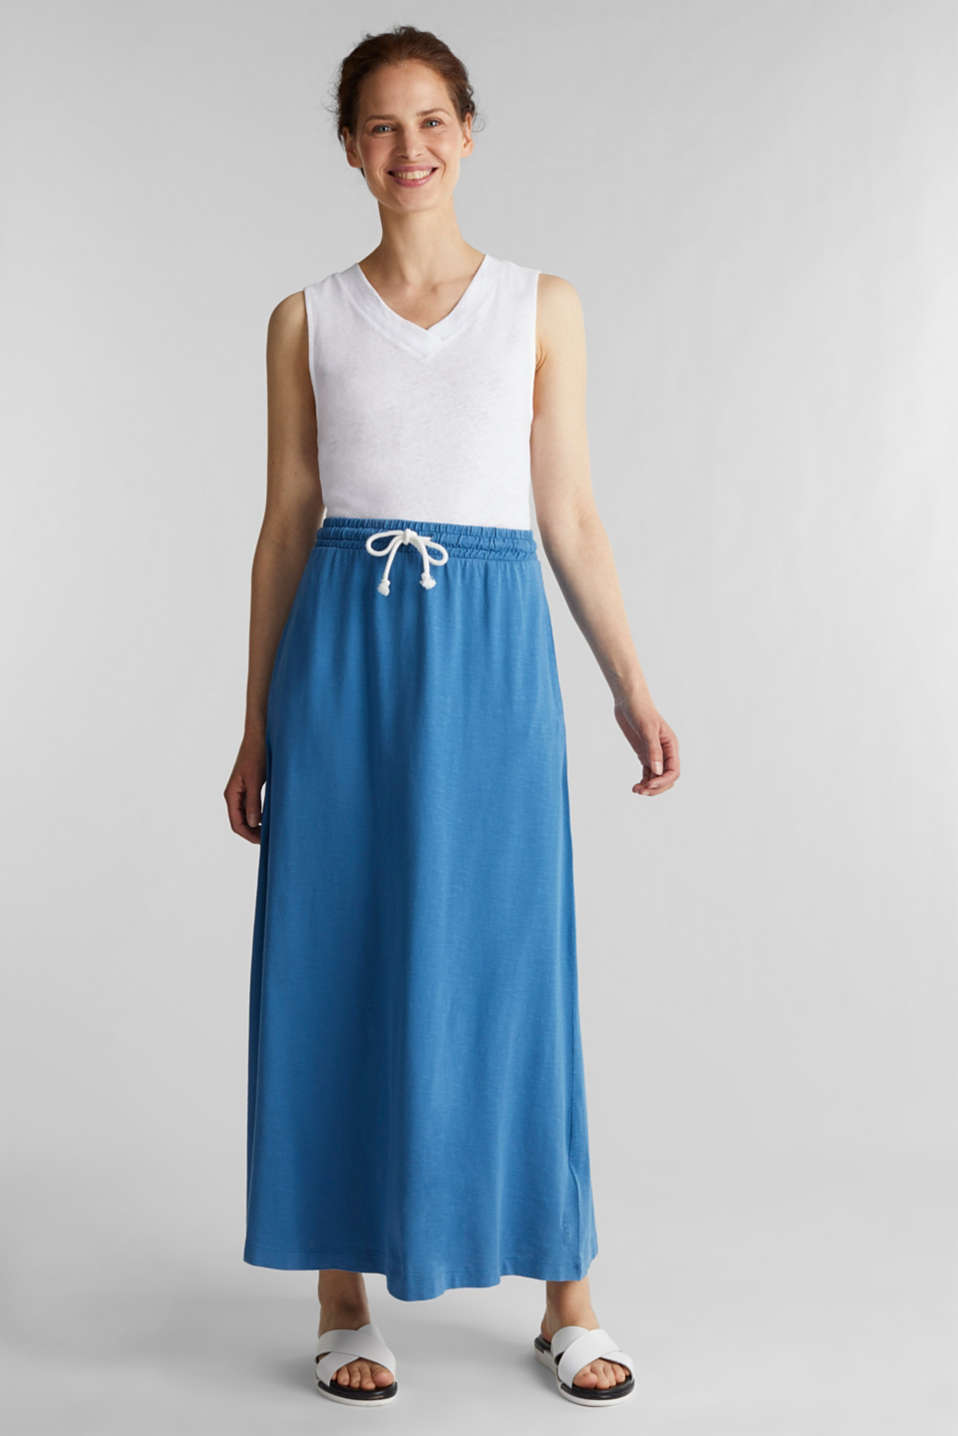 Esprit - Jersey skirt made of 100% organic cotton